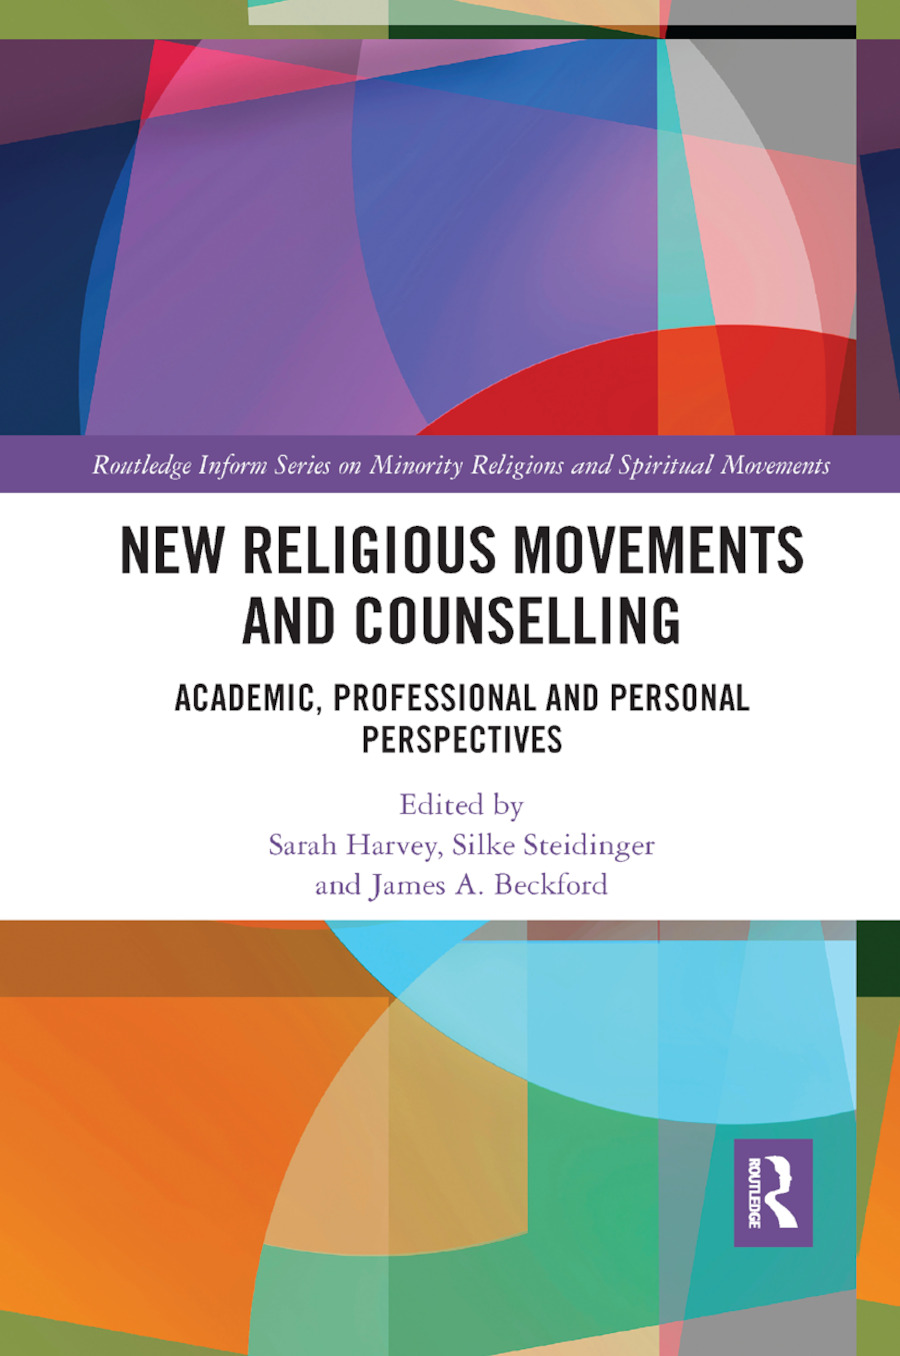 New Religious Movements and Counselling: Academic, Professional and Personal Perspectives book cover